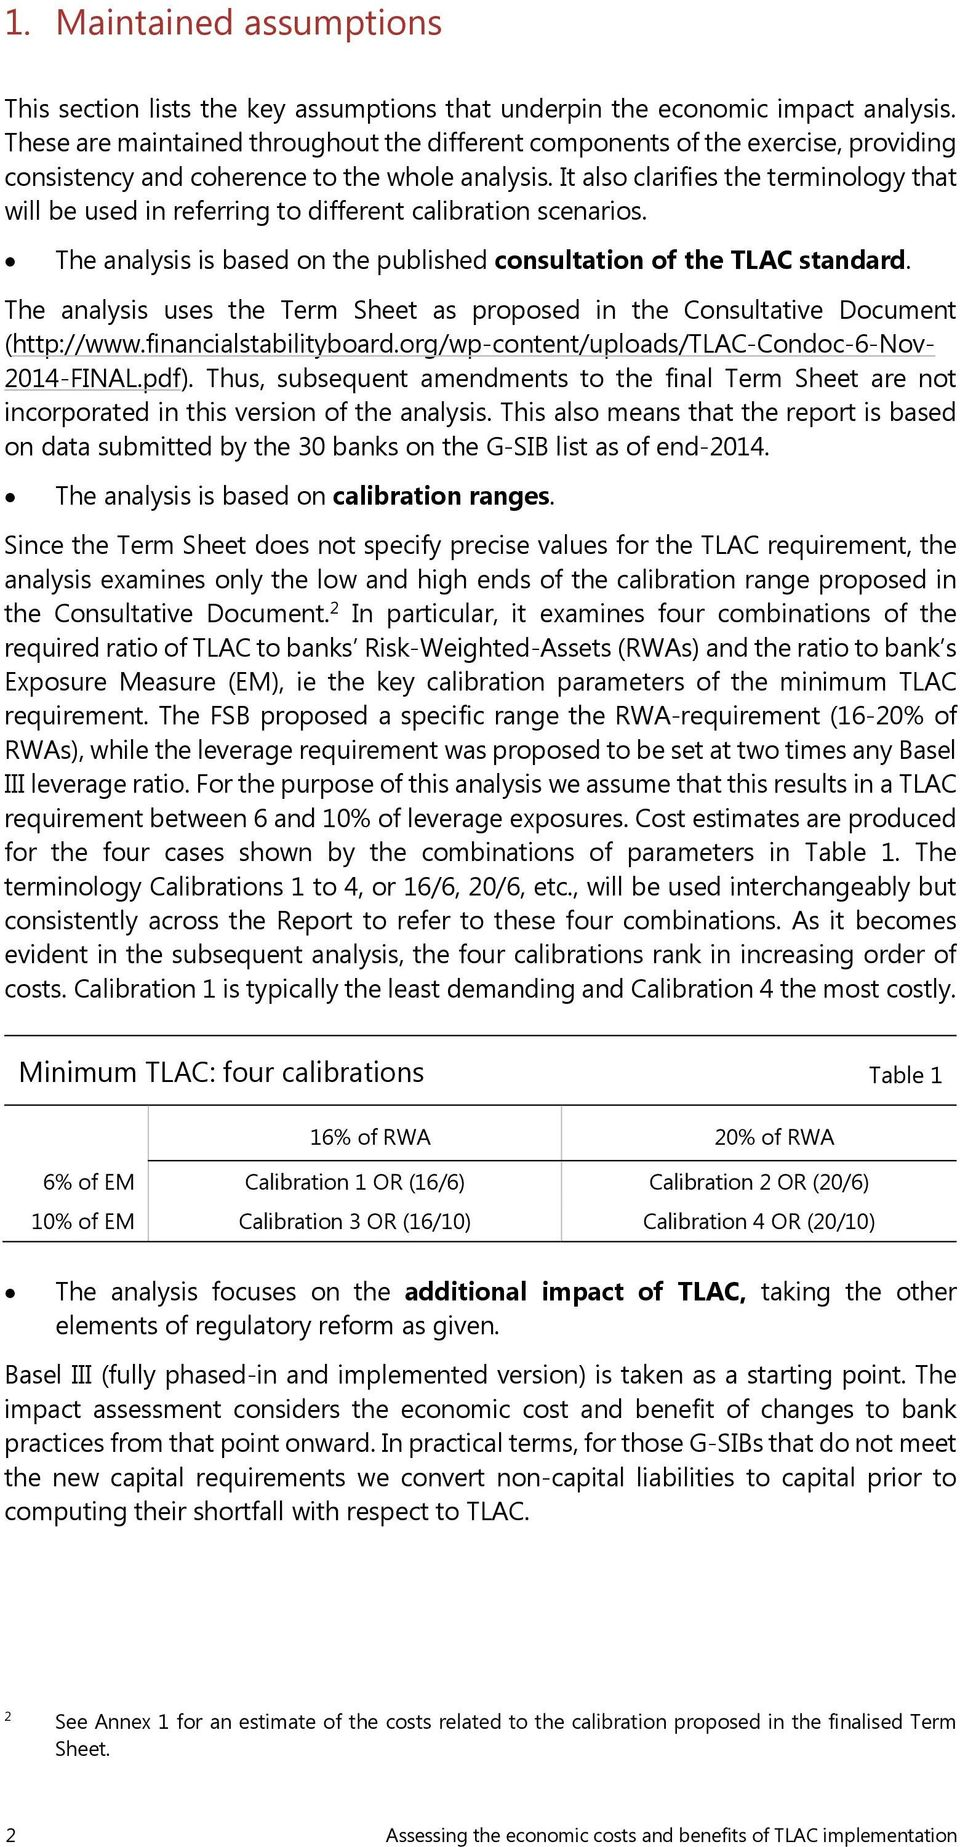 It also clarifies the terminology that will be used in referring to different calibration scenarios. The analysis is based on the published consultation of the TLAC standard.